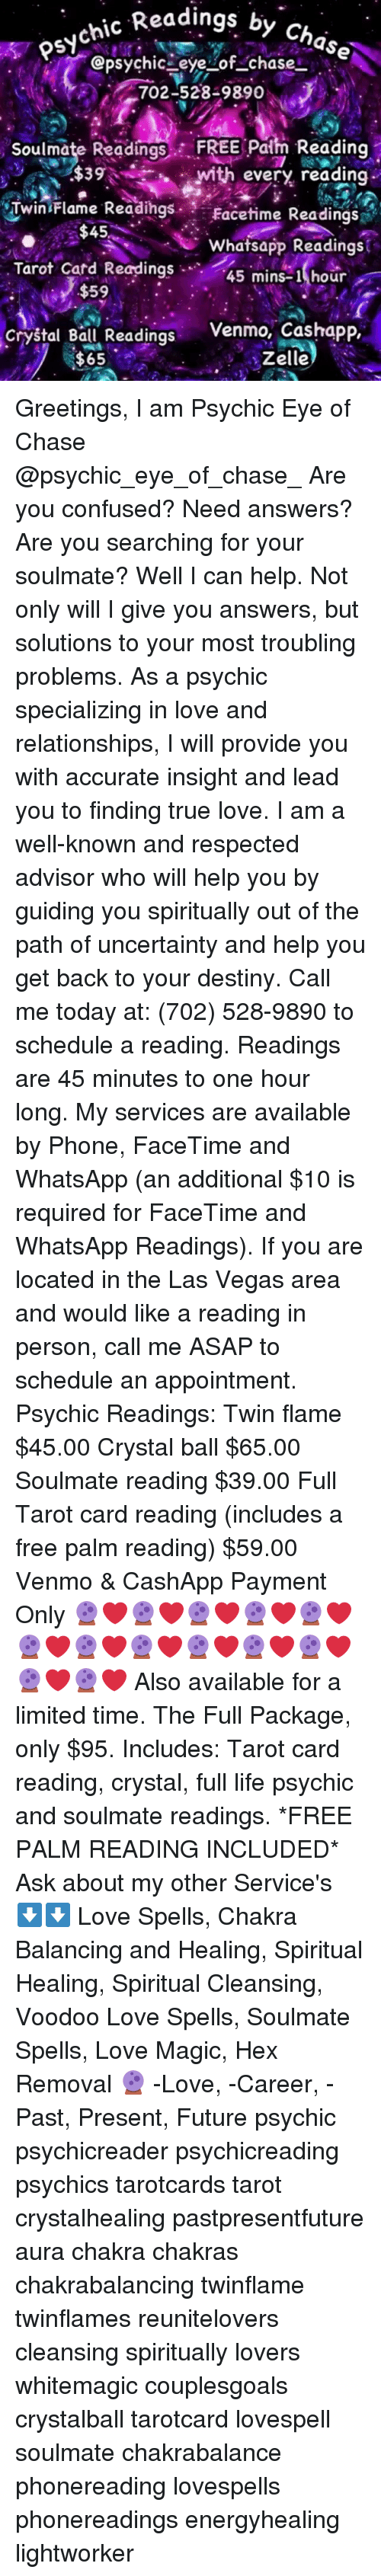 Confused, Destiny, and Facetime: by Chase  s7osychic Readin  @psychiceye Lof _chase  702-528-9890  Soulmate Readings FREE Palm Reading  Twin Flame Readihgs Facetime Readings  Whatsapp Readings  Mith every reading.  $45  Tarot Card Readings  $59  45 mins-1 hour  Crystal Ball ReadingsV  $65  Venmo, Cashapp,  Zelle Greetings, I am Psychic Eye of Chase @psychic_eye_of_chase_ Are you confused? Need answers? Are you searching for your soulmate? Well I can help. Not only will I give you answers, but solutions to your most troubling problems. As a psychic specializing in love and relationships, I will provide you with accurate insight and lead you to finding true love. I am a well-known and respected advisor who will help you by guiding you spiritually out of the path of uncertainty and help you get back to your destiny. Call me today at: (702) 528-9890 to schedule a reading. Readings are 45 minutes to one hour long. My services are available by Phone, FaceTime and WhatsApp (an additional $10 is required for FaceTime and WhatsApp Readings). If you are located in the Las Vegas area and would like a reading in person, call me ASAP to schedule an appointment. Psychic Readings: Twin flame $45.00 Crystal ball $65.00 Soulmate reading $39.00 Full Tarot card reading (includes a free palm reading) $59.00 Venmo & CashApp Payment Only 🔮❤🔮❤🔮❤🔮❤🔮❤🔮❤🔮❤🔮❤🔮❤🔮❤🔮❤🔮❤🔮❤ Also available for a limited time. The Full Package, only $95. Includes: Tarot card reading, crystal, full life psychic and soulmate readings. *FREE PALM READING INCLUDED* Ask about my other Service's ⬇⬇ Love Spells, Chakra Balancing and Healing, Spiritual Healing, Spiritual Cleansing, Voodoo Love Spells, Soulmate Spells, Love Magic, Hex Removal 🔮 -Love, -Career, -Past, Present, Future psychic psychicreader psychicreading psychics tarotcards tarot crystalhealing pastpresentfuture aura chakra chakras chakrabalancing twinflame twinflames reunitelovers cleansing spiritually lovers whitemagic couplesgoals crystalball tarotcard love